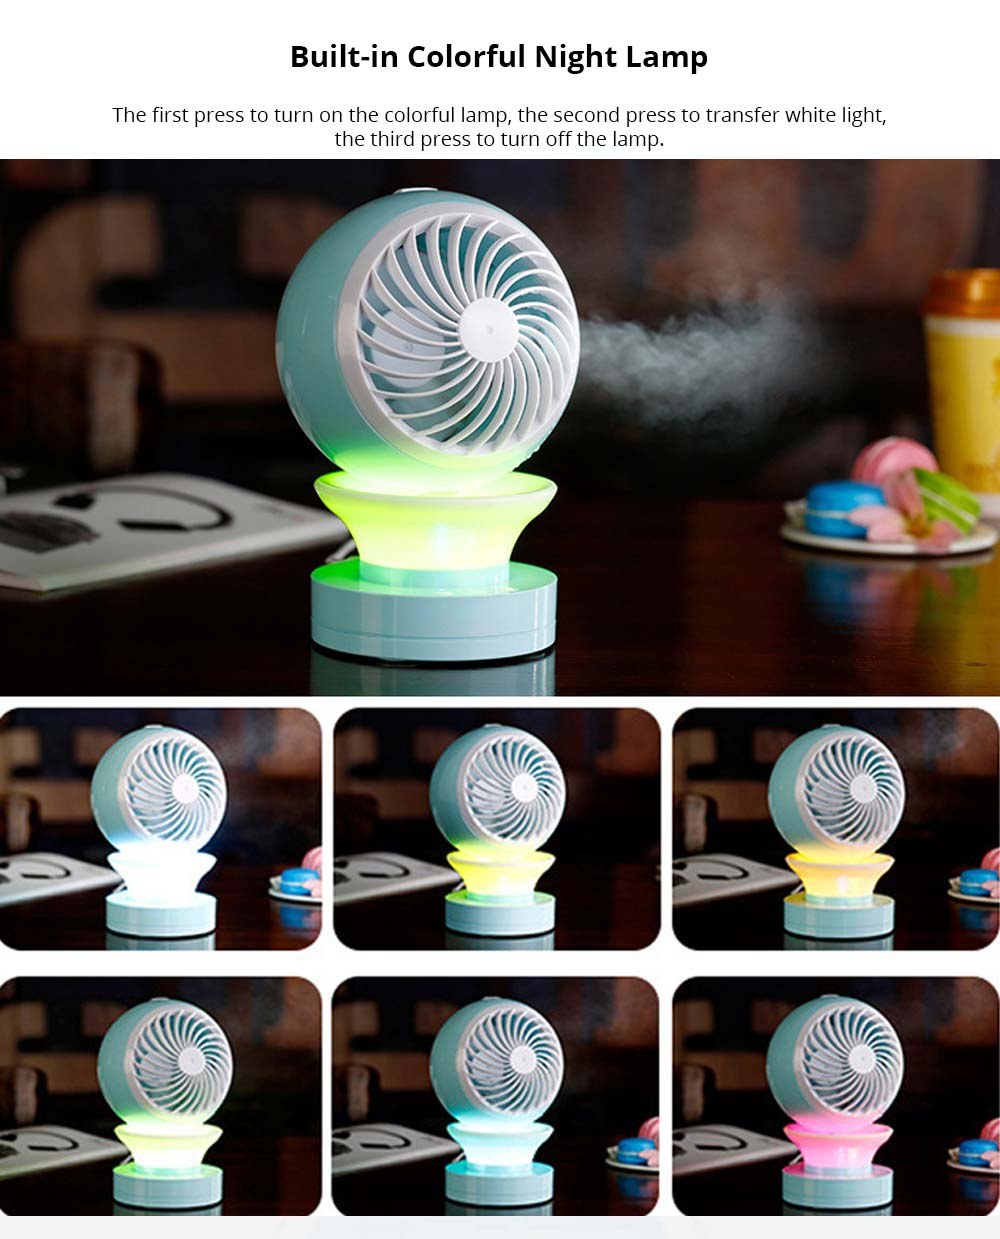 Mini Air Conditioning Fan - Portable USB Mini Desktop Humidifier With Built-in LED Night Lamp 9